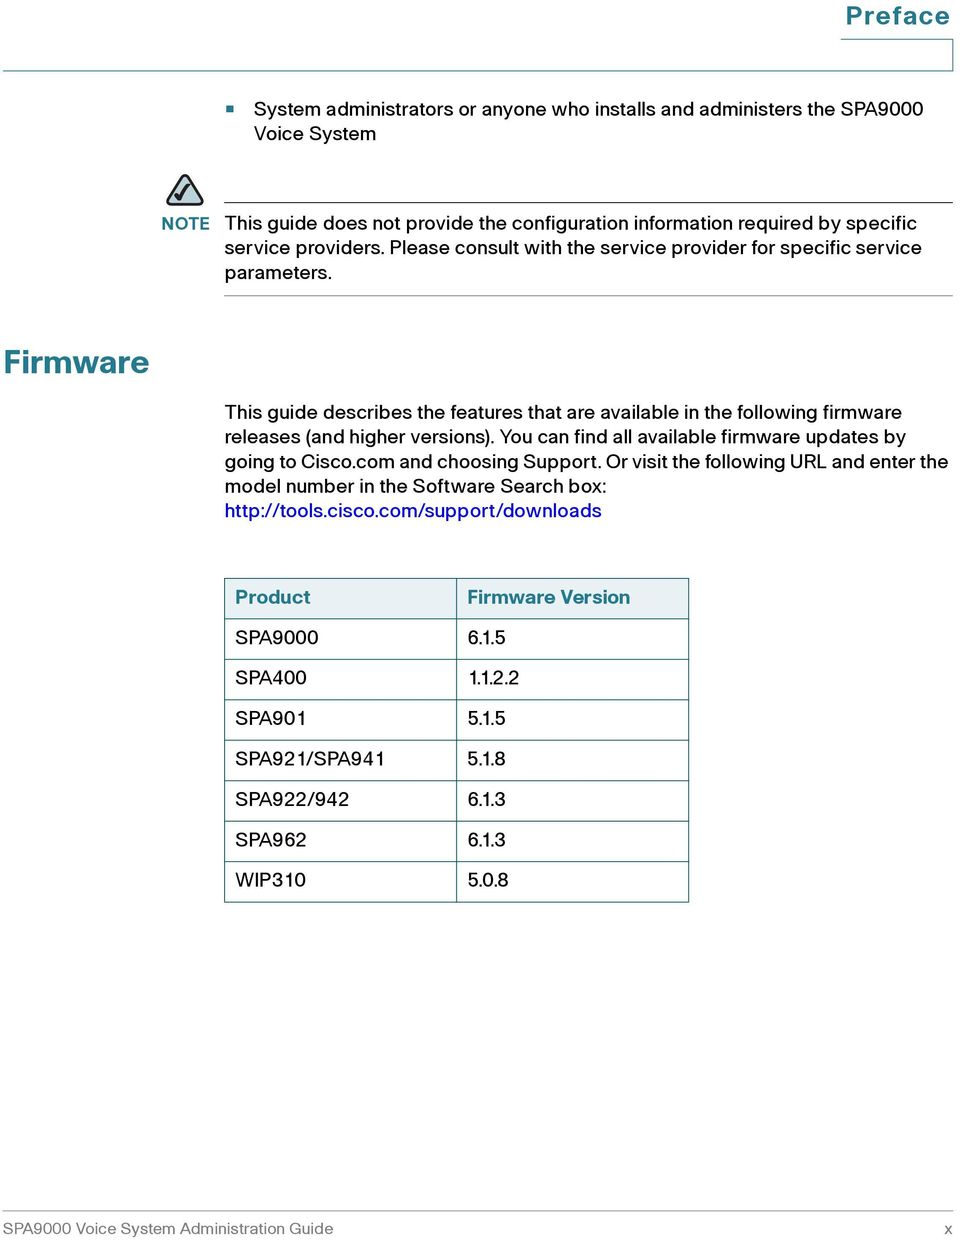 Firmware This guide describes the features that are available in the following firmware releases (and higher versions). You can find all available firmware updates by going to Cisco.